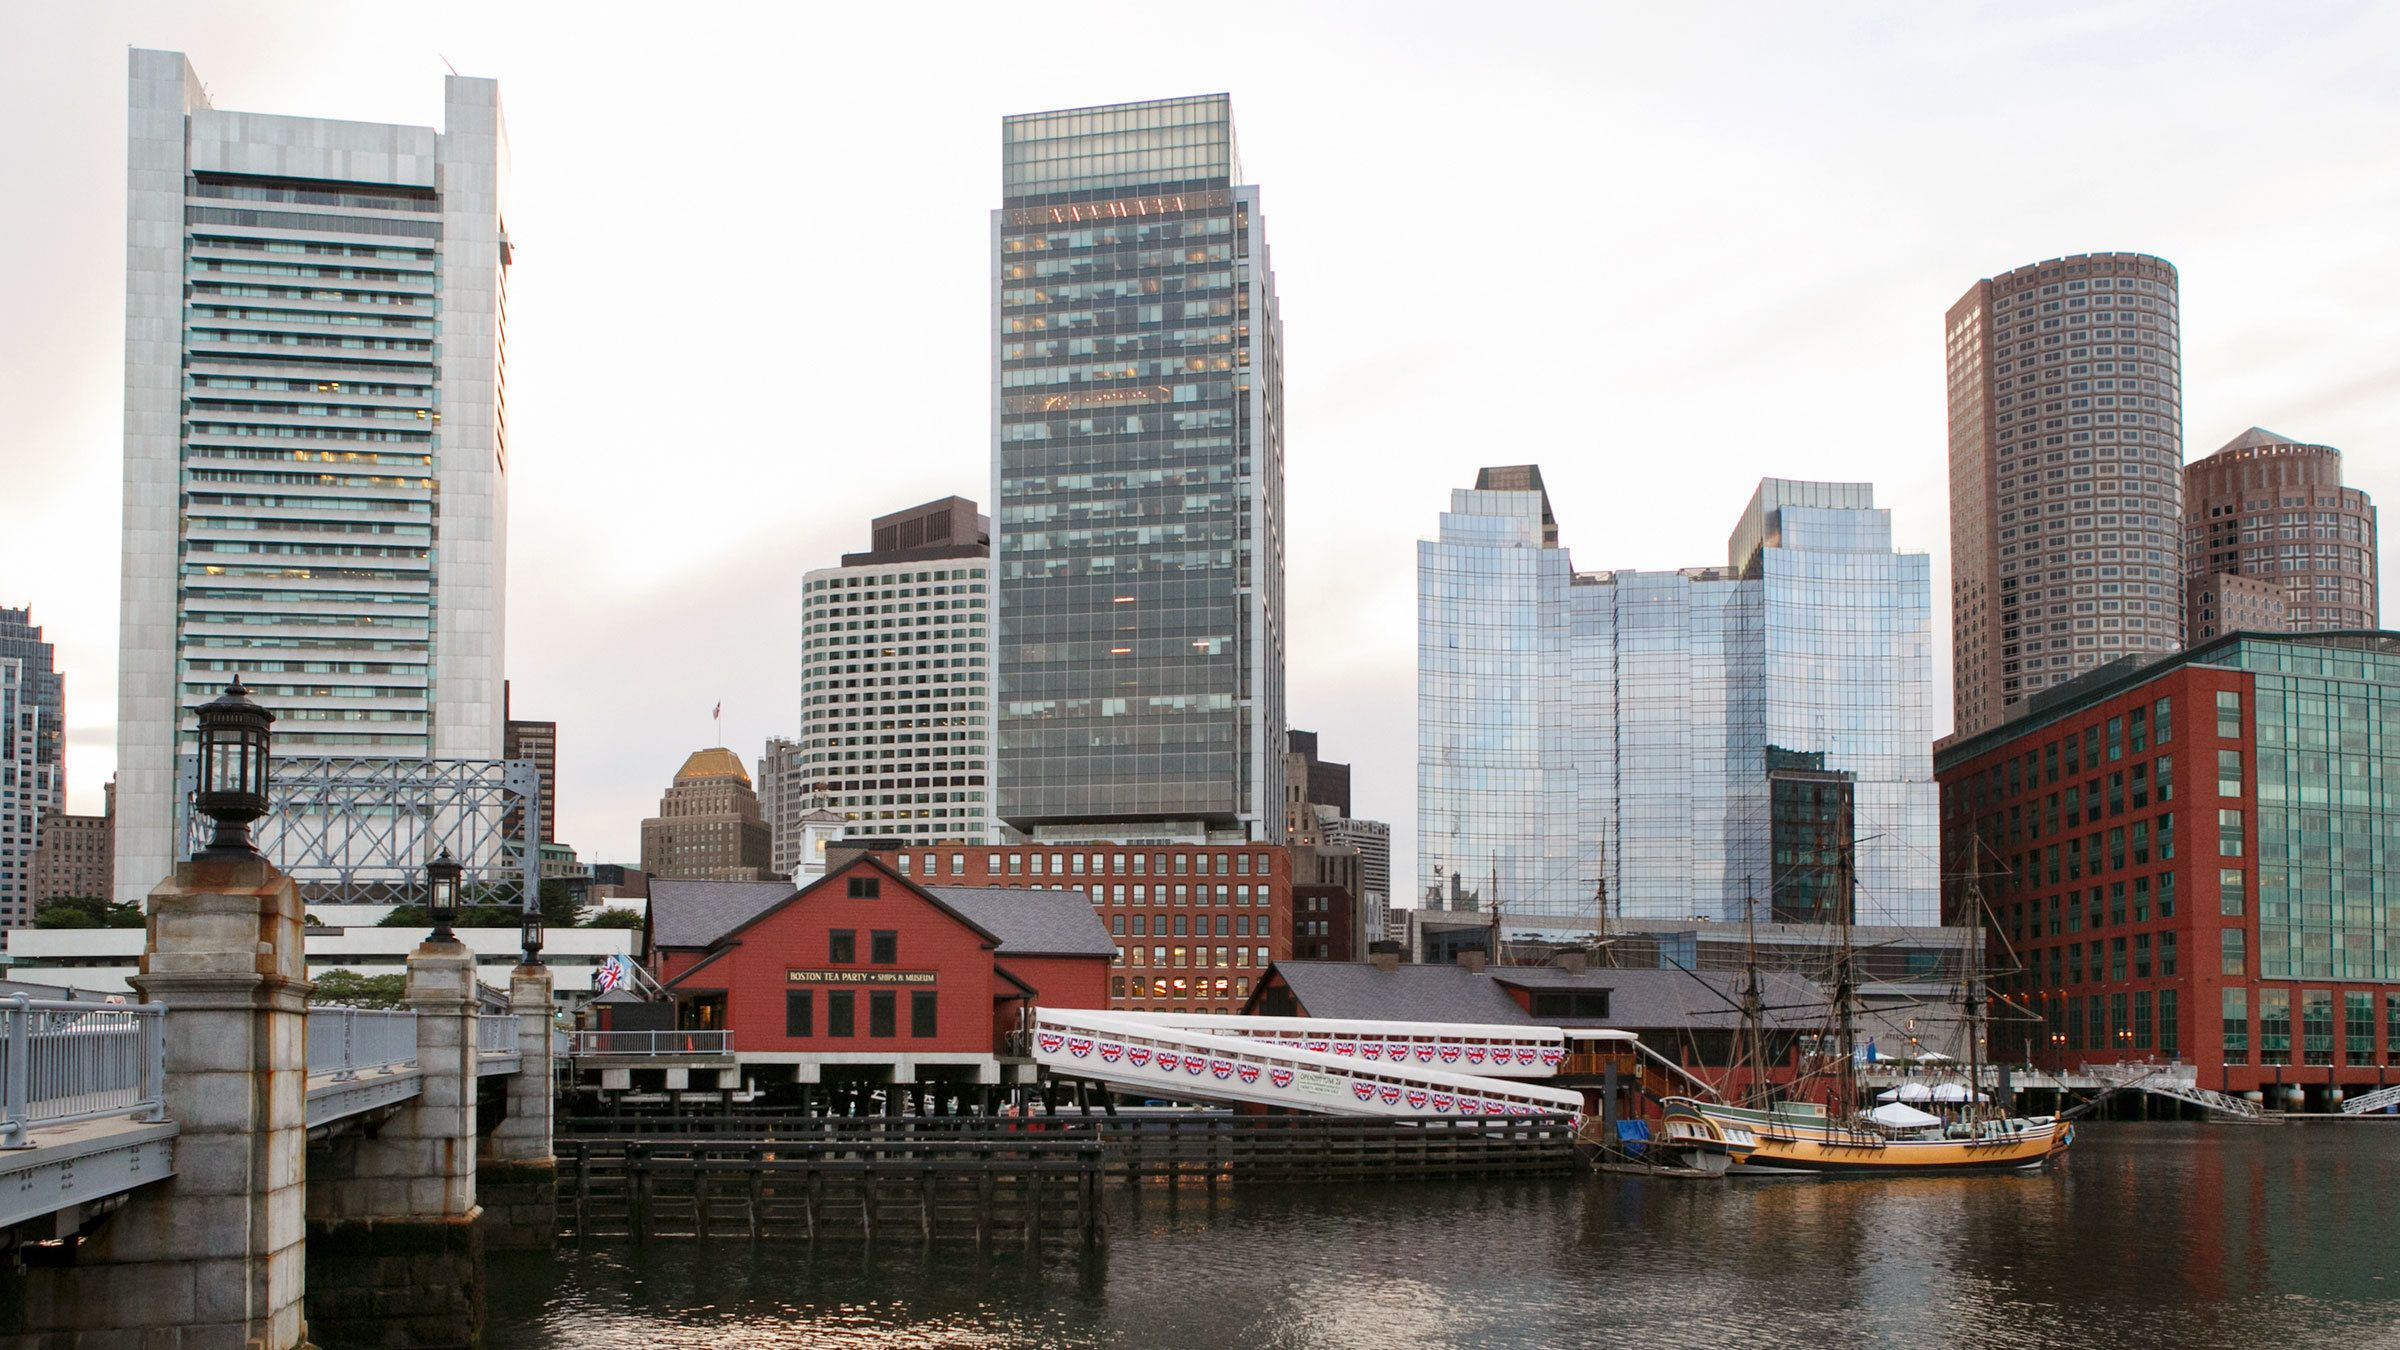 Boston Tea Party Ships Museum on the water in Boston